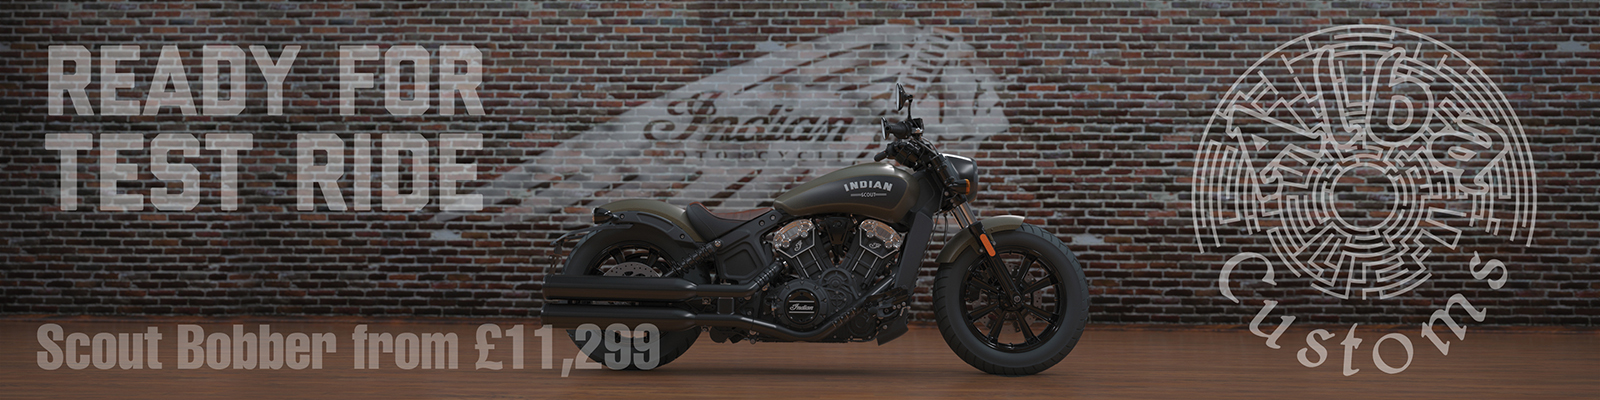 Indian Scout Bobber test ride